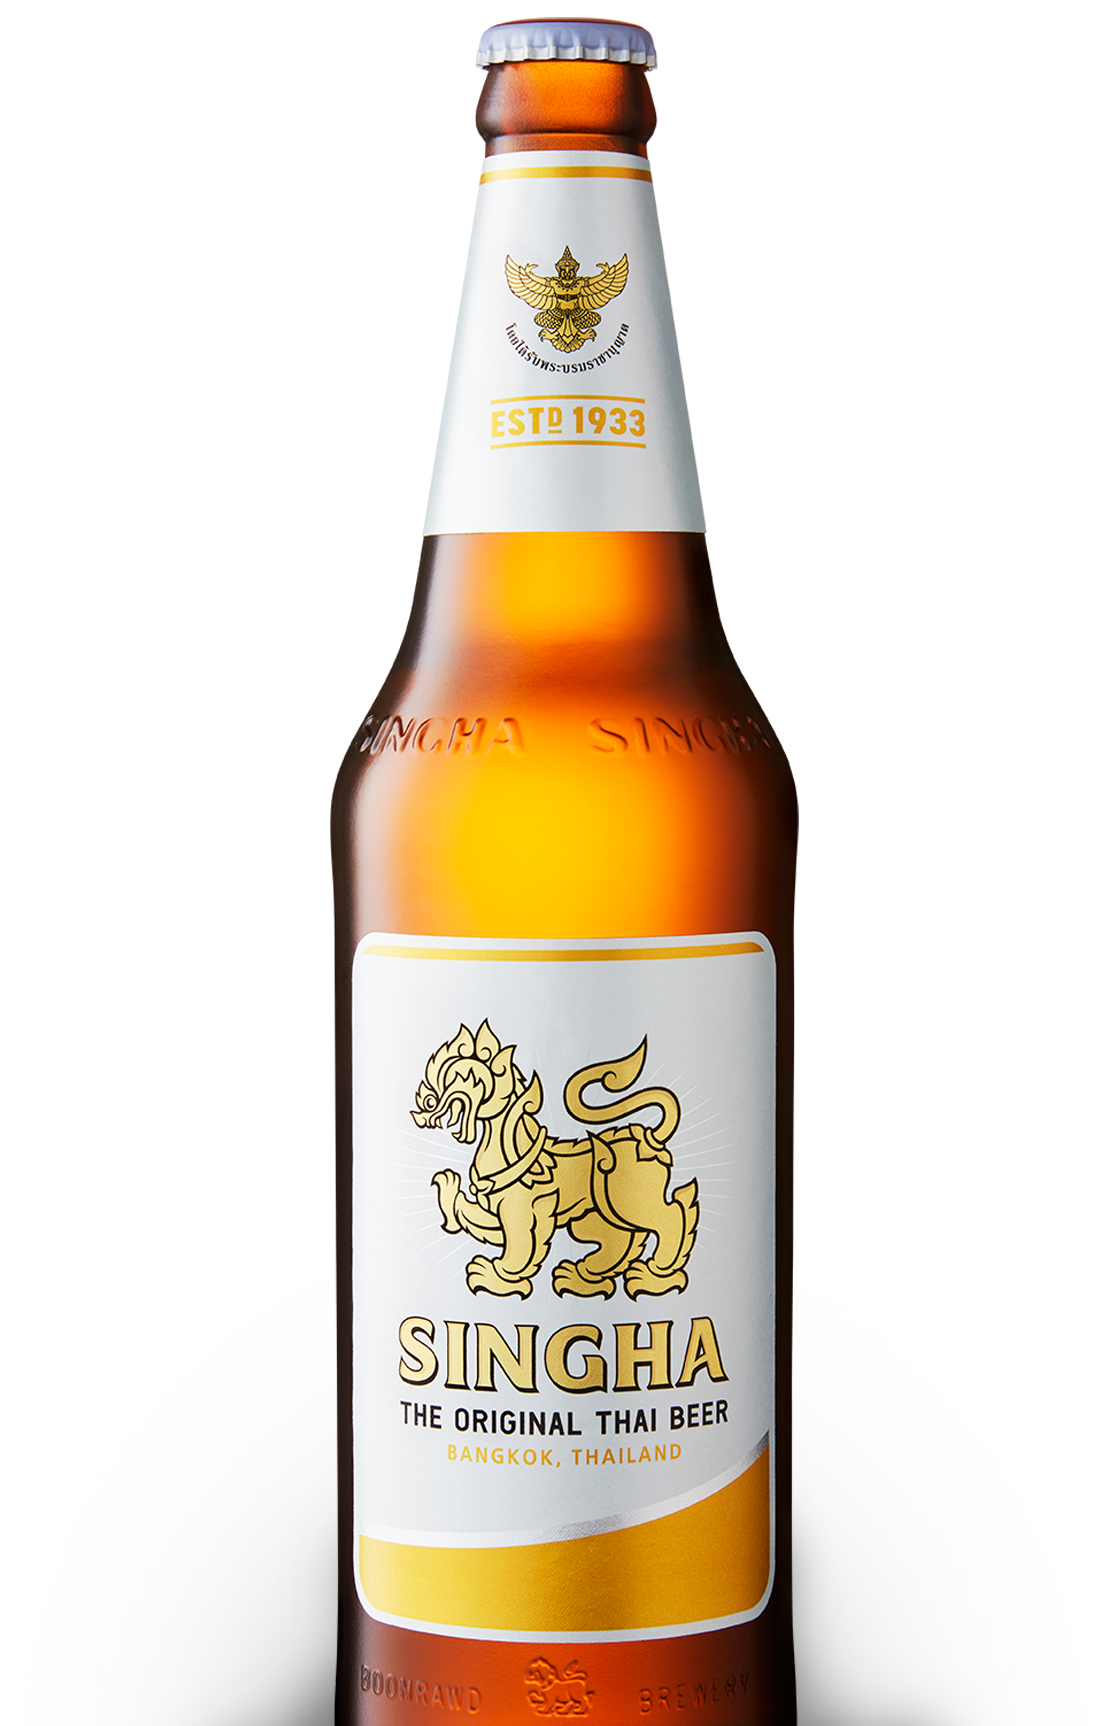 Singha Bottle With Garuda Thai Symbol of Excellence